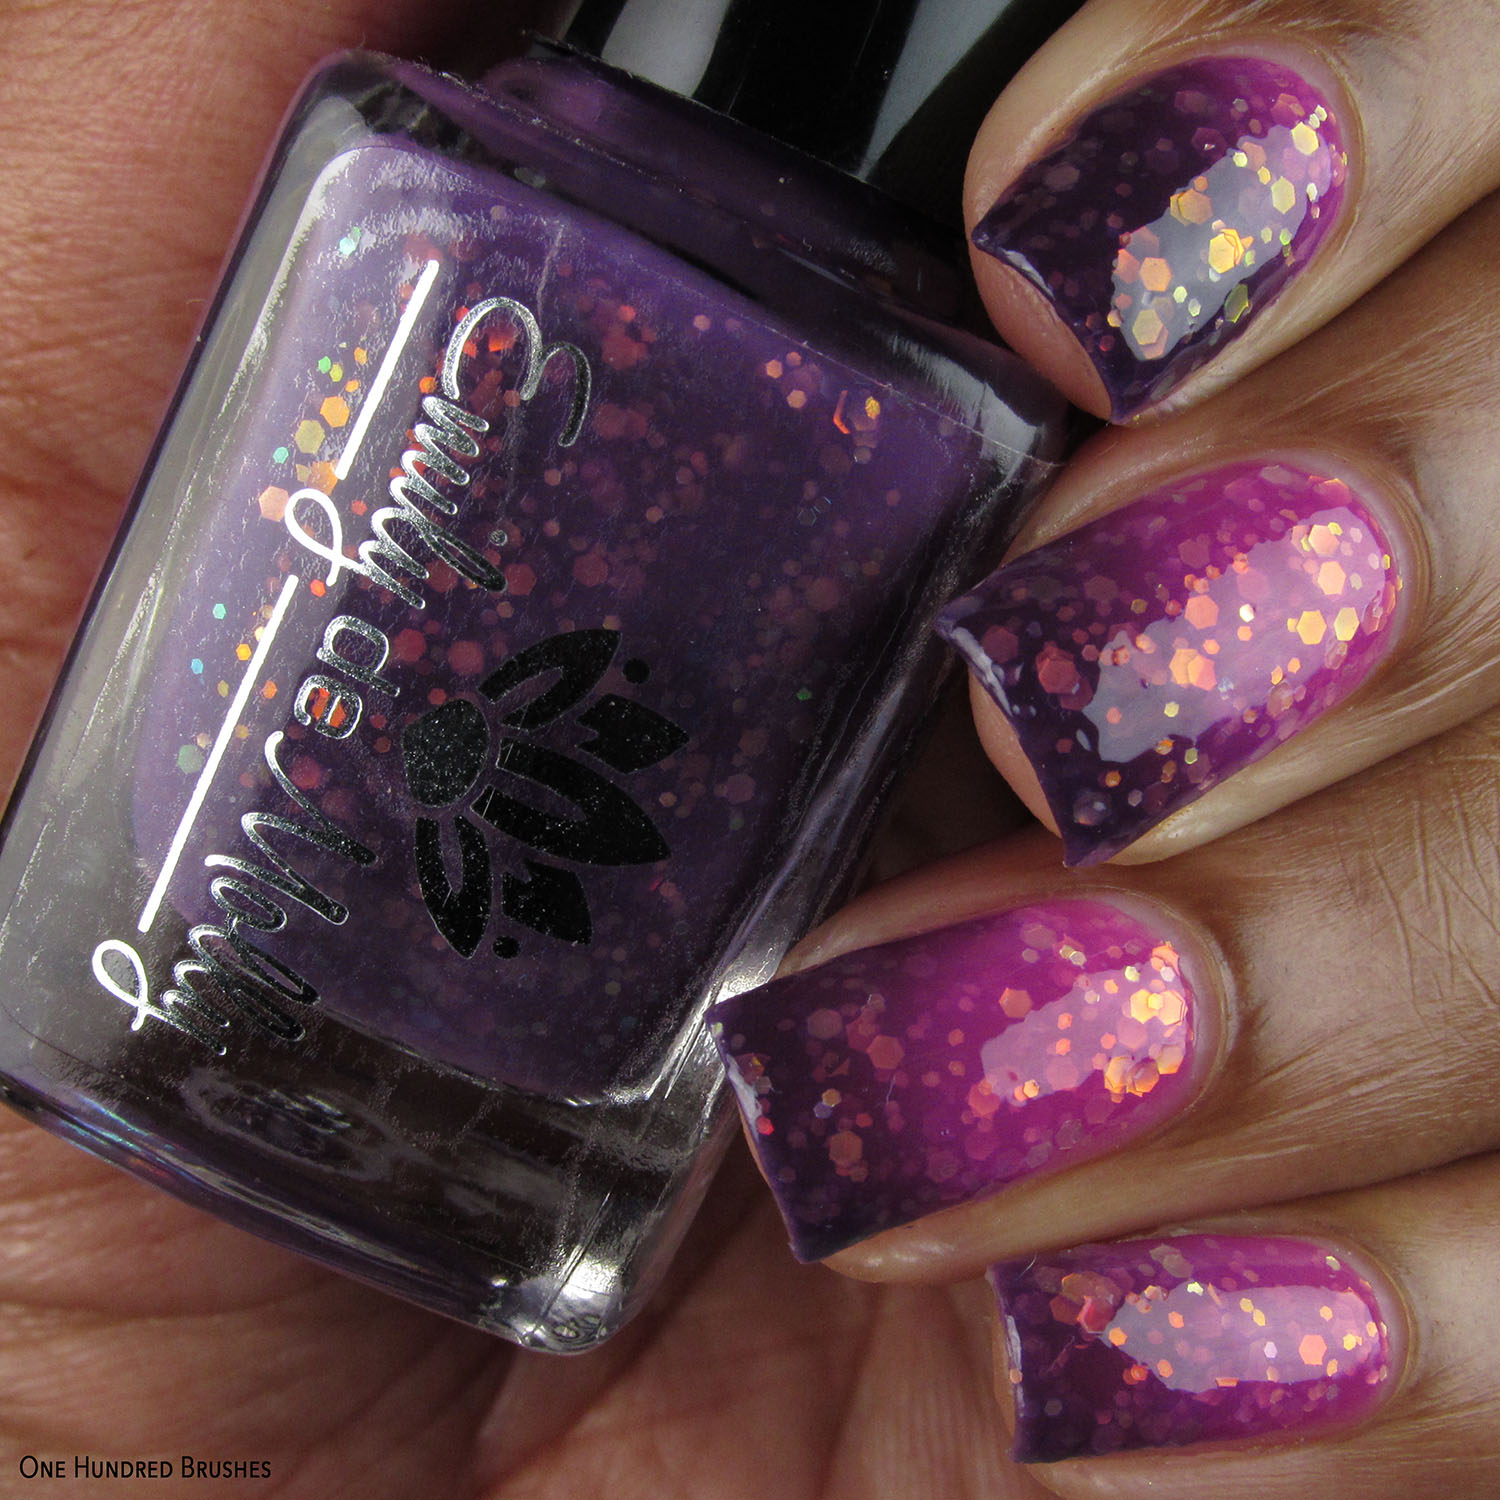 Ombres And Glitter - Emily de Molly - April 2020